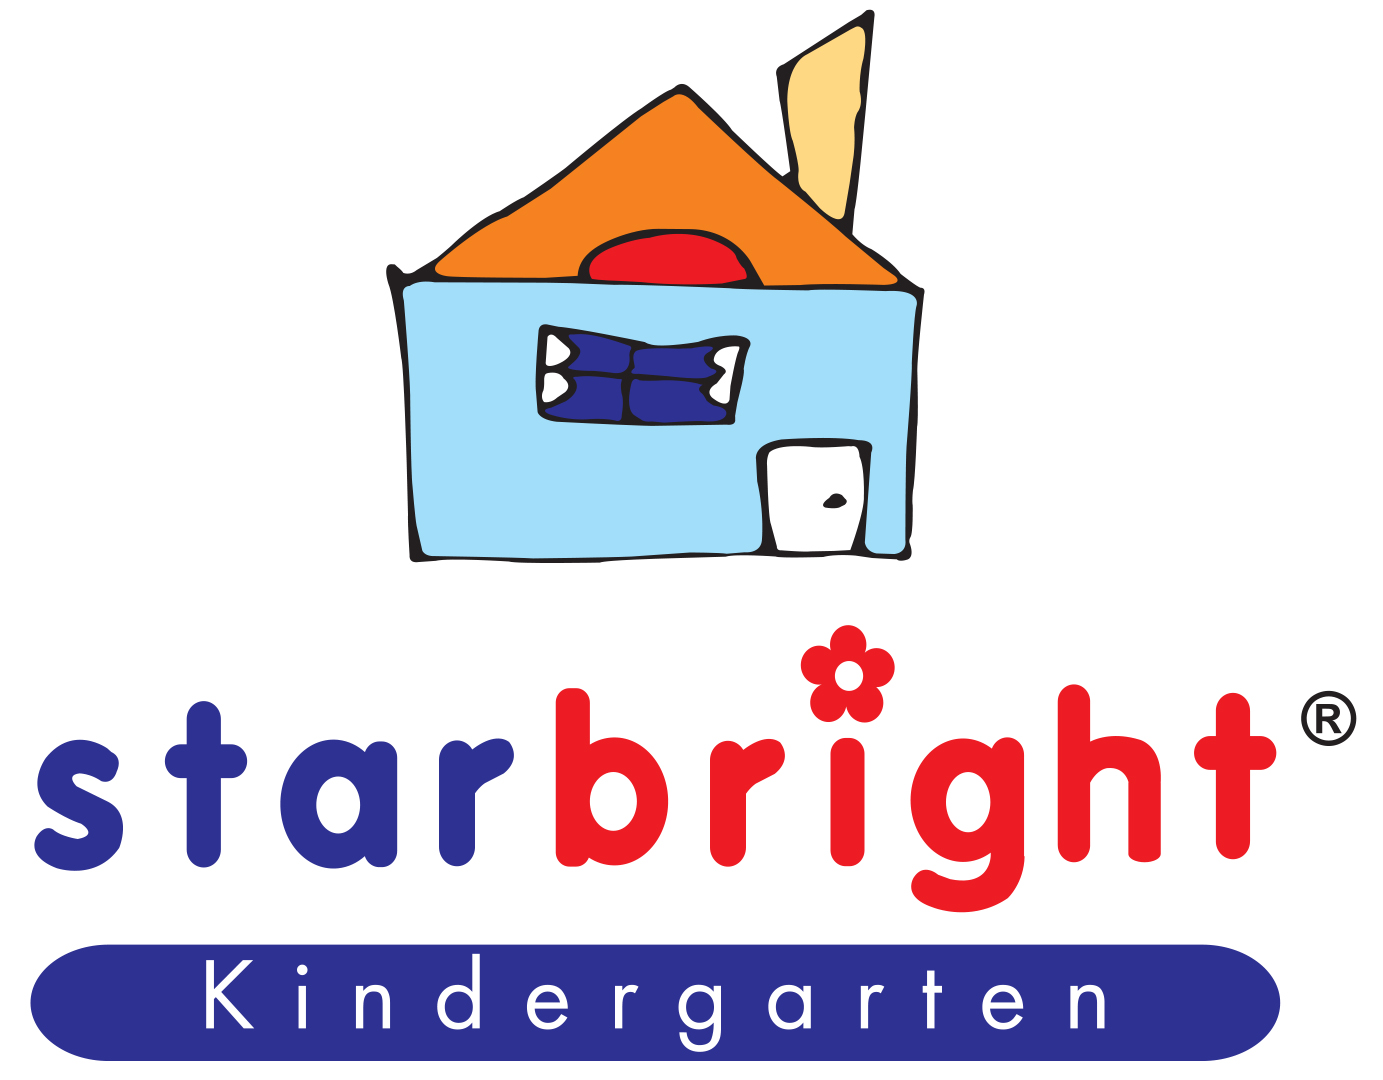 Starbright logo (with R)